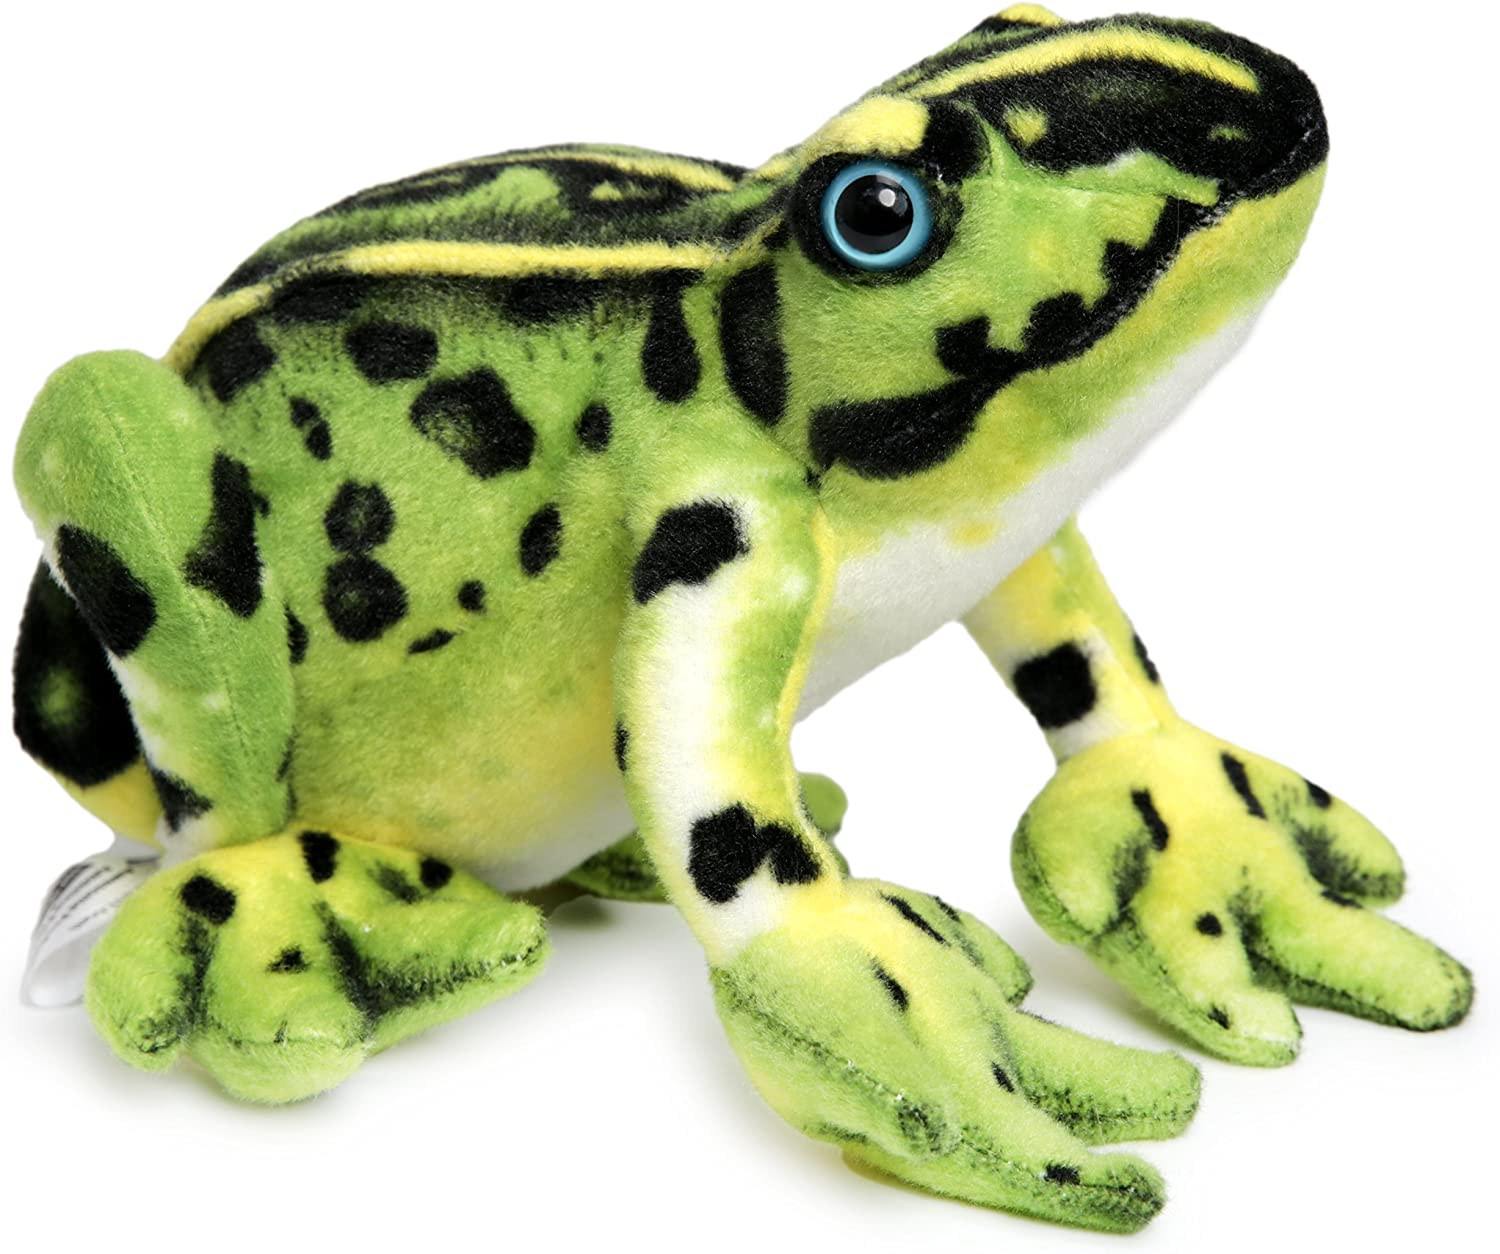 Fernando the Frog   10 Inch Realistic Looking Stuffed Animal Plush   By VIAHART by VIAHART